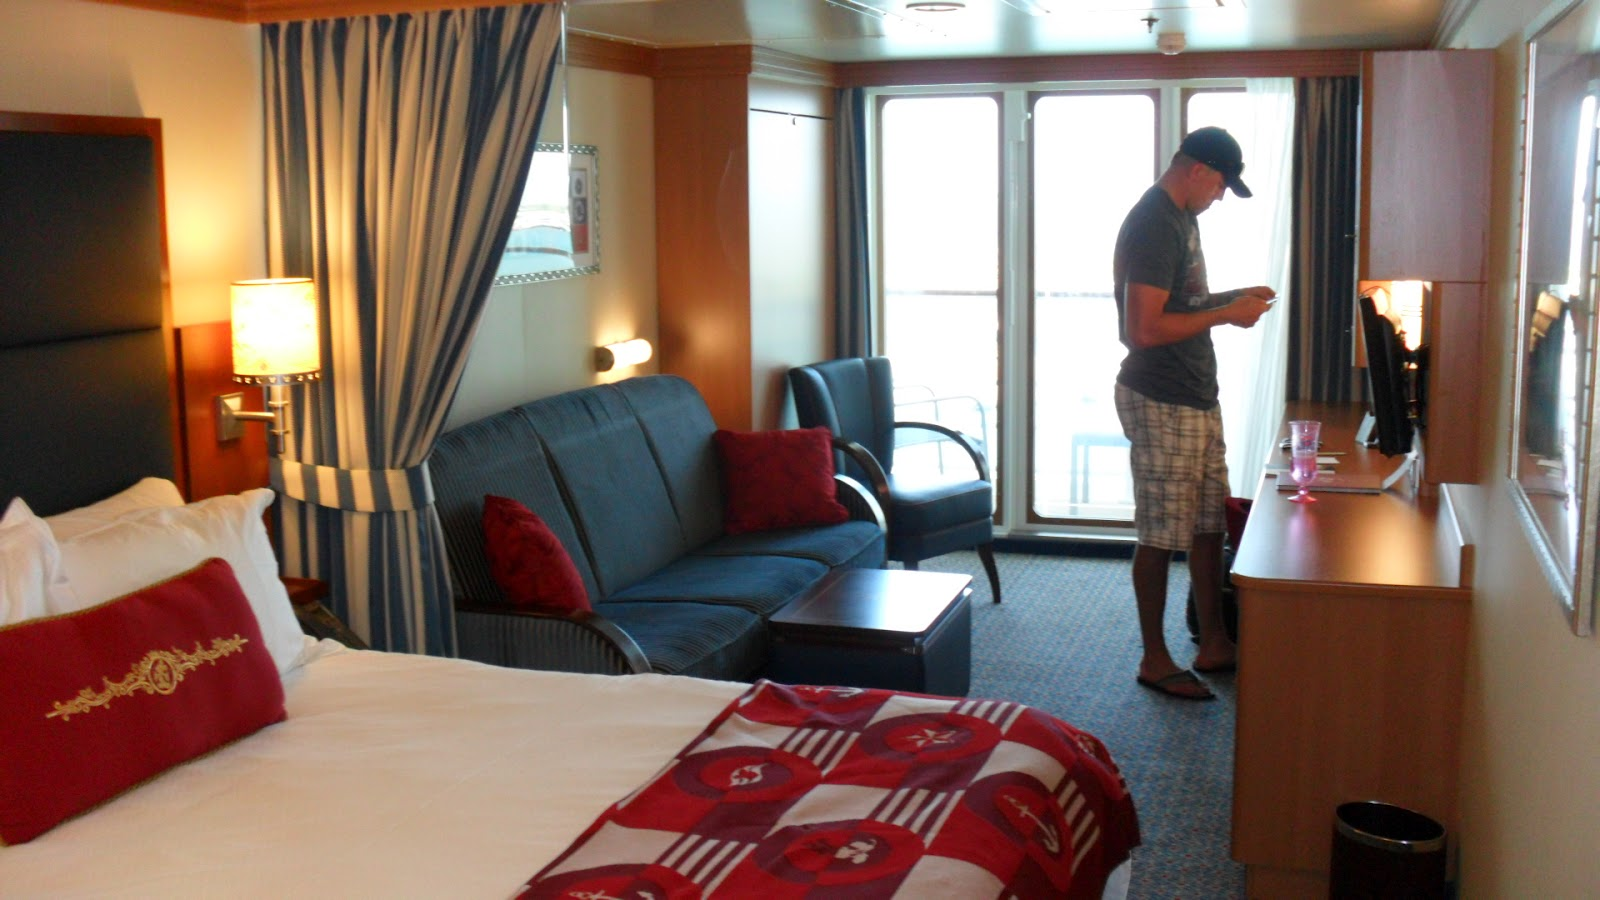 Disney Cruise Rooms For 6 Viewing Gallery